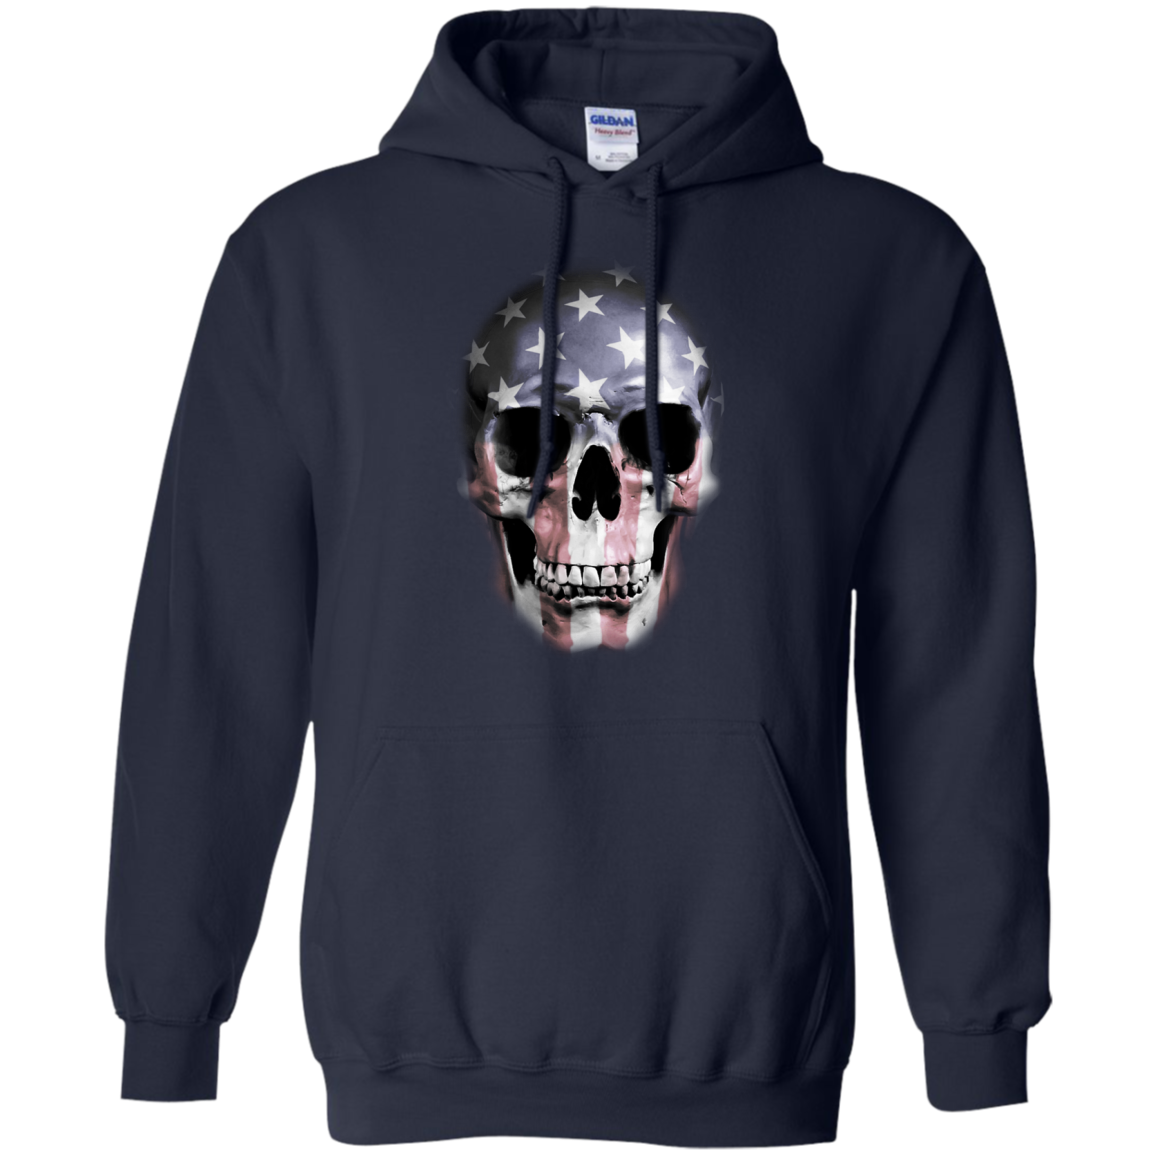 American Skull T-Shirt & Hoodie, Sweatshirt - The Sun Cat